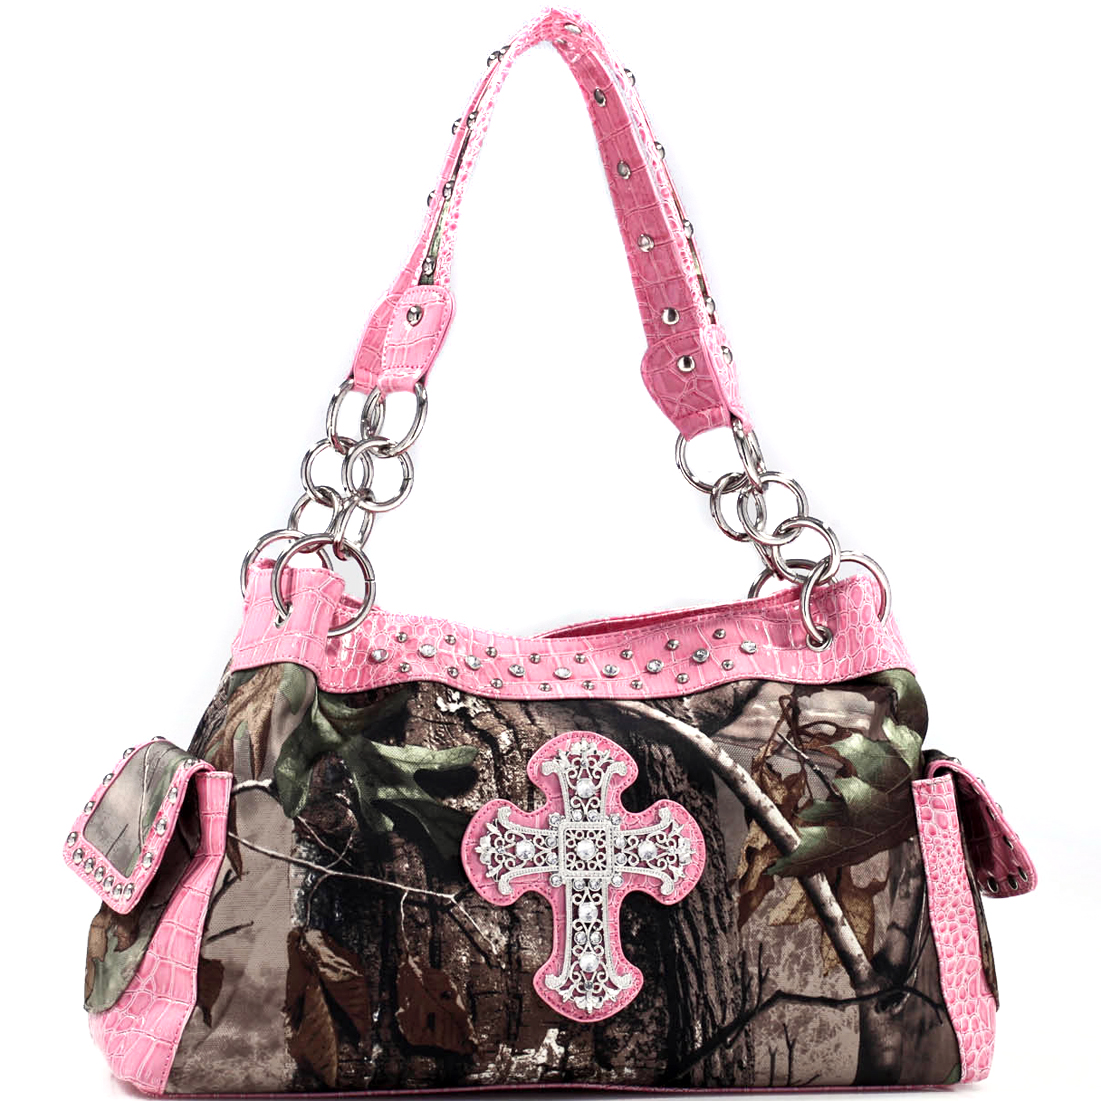 Realtree® Camouflage Shoulder Bag Handbag w/ Rhinestone Cross - Pink